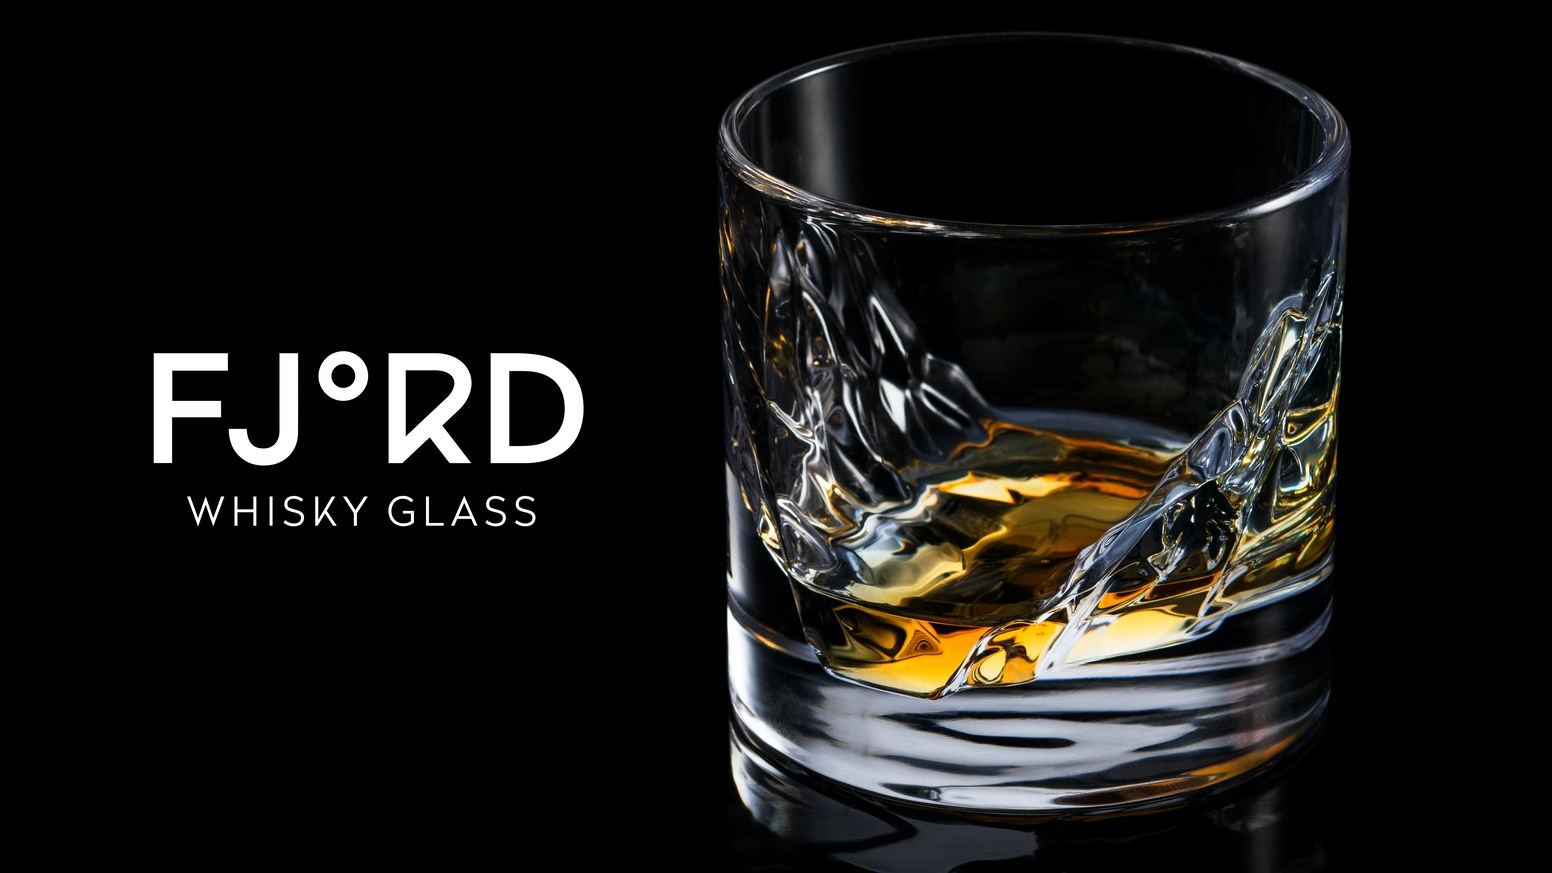 Marrying design, science and pleasure to form a unique whisky glass inspired by the Fjords of Norway